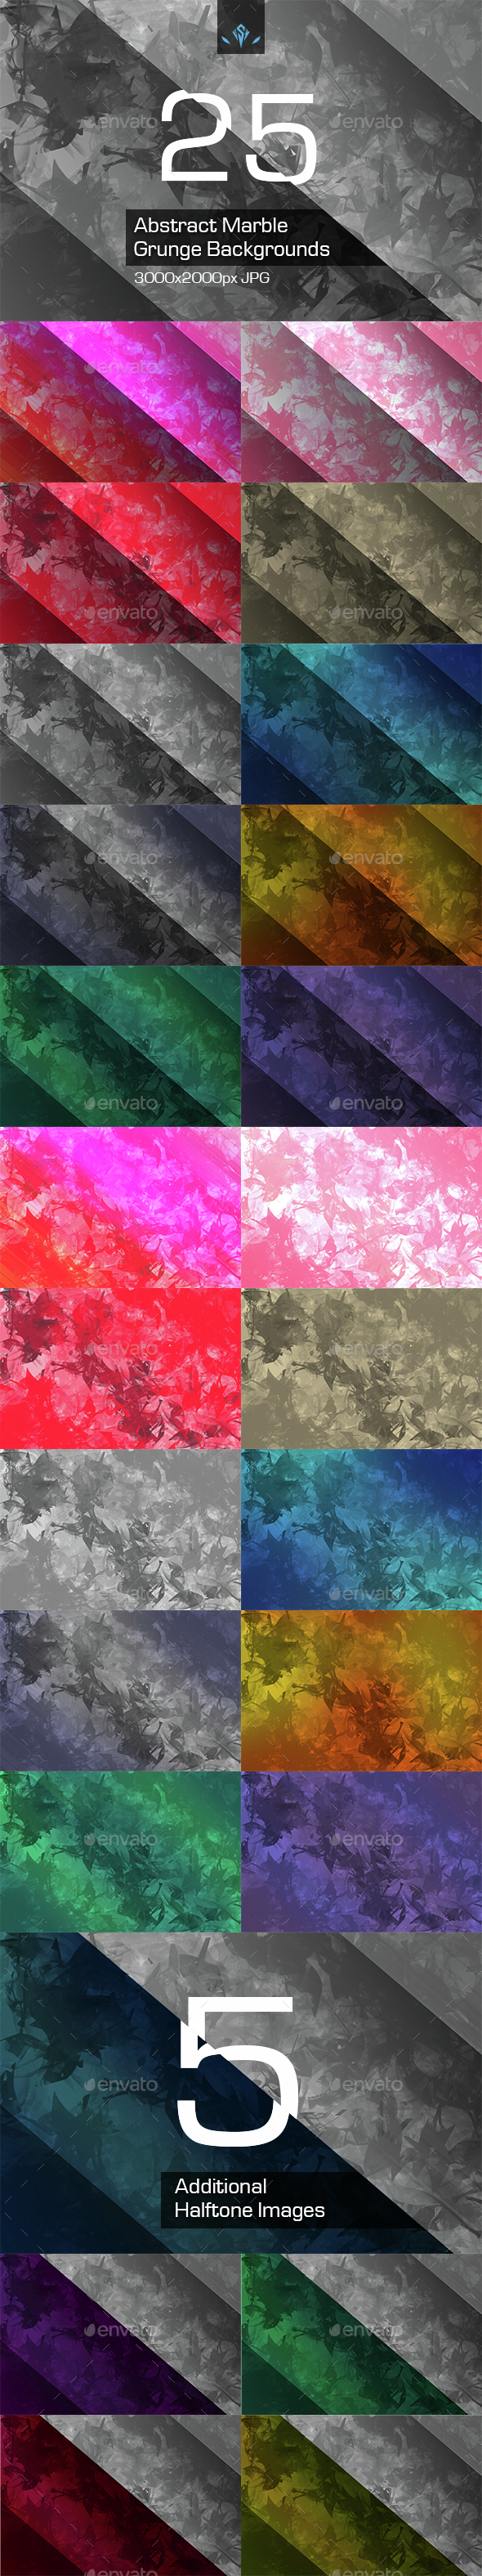 Abstract Marble Grunge Backgrounds - Abstract Backgrounds